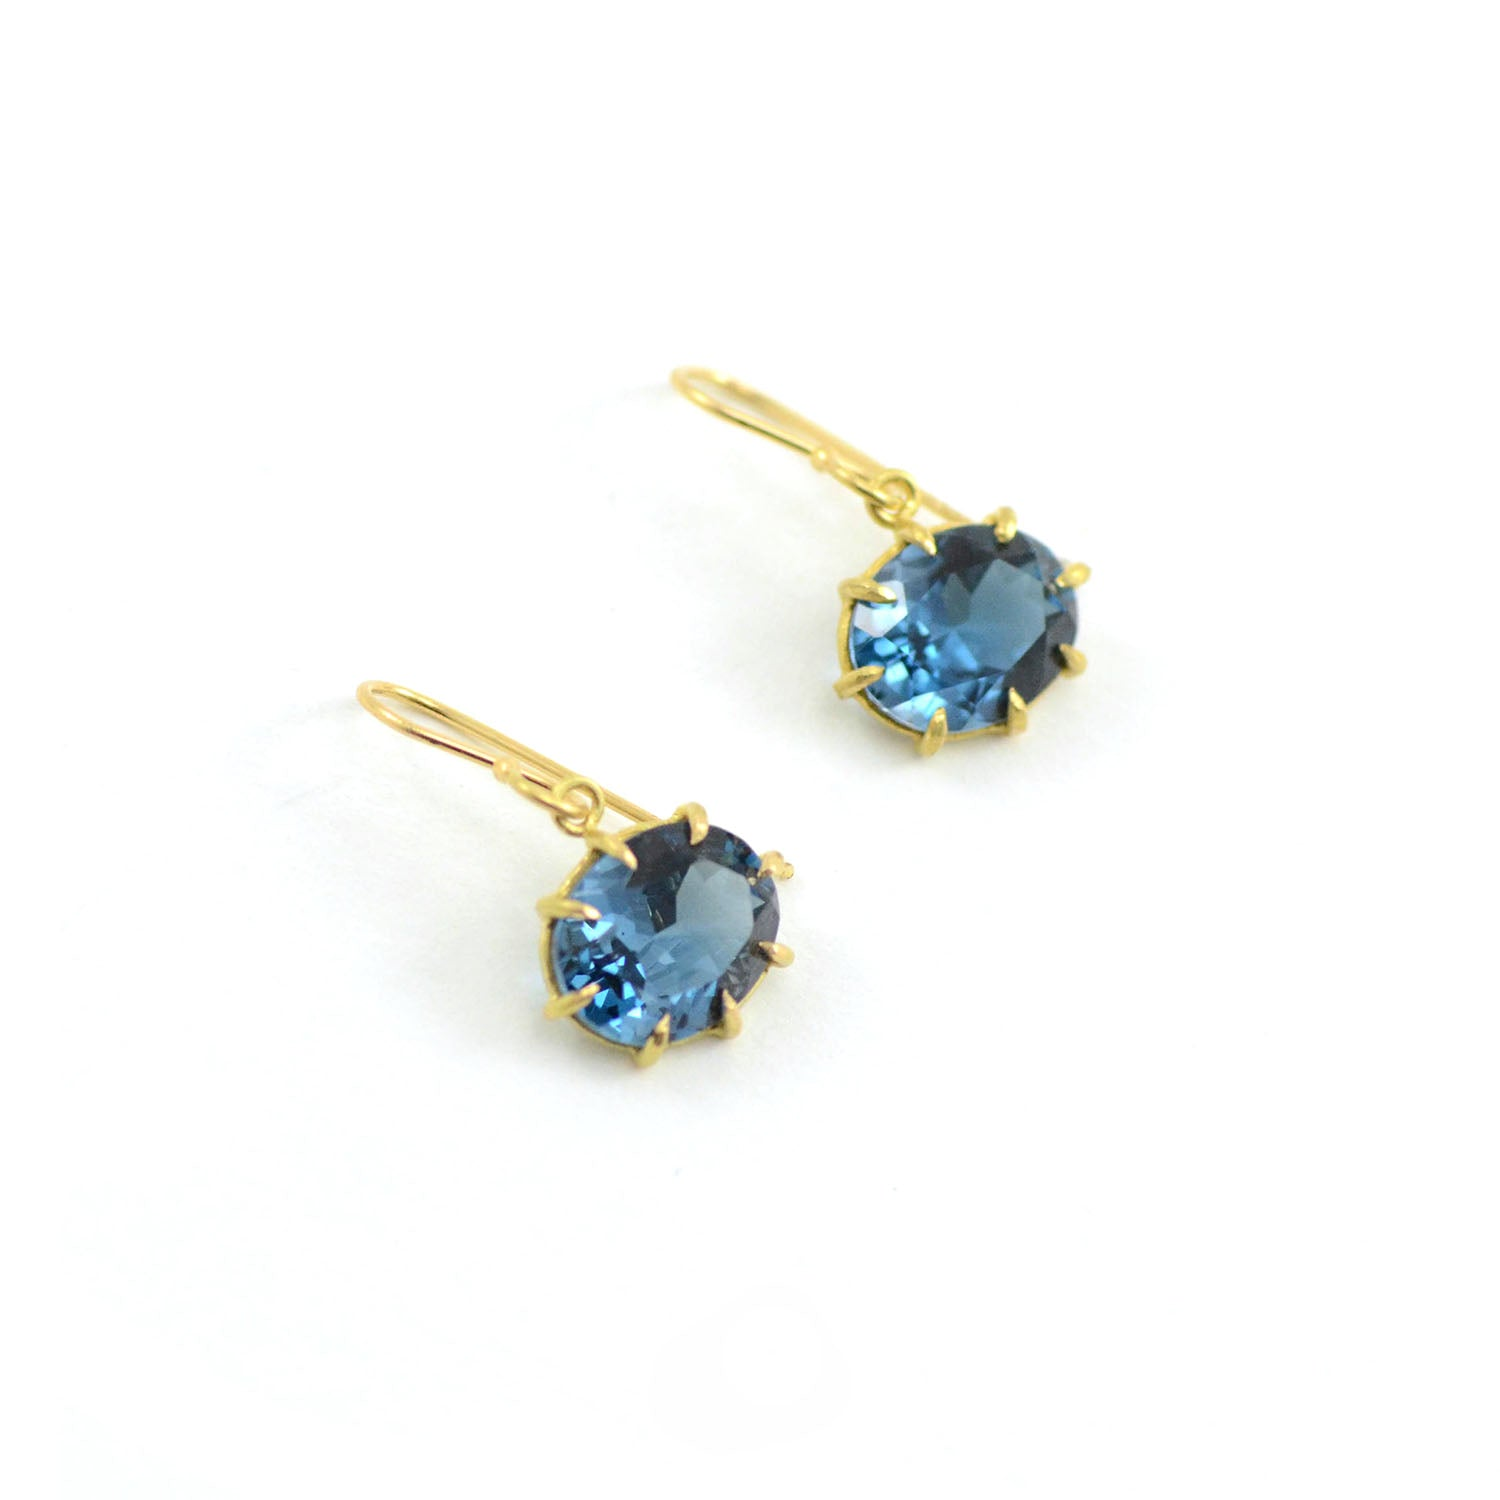 Rosanne Pugliese earrings Small Oval Faceted London Blue Topaz 18 Karat Yellow Gold on Ear wires